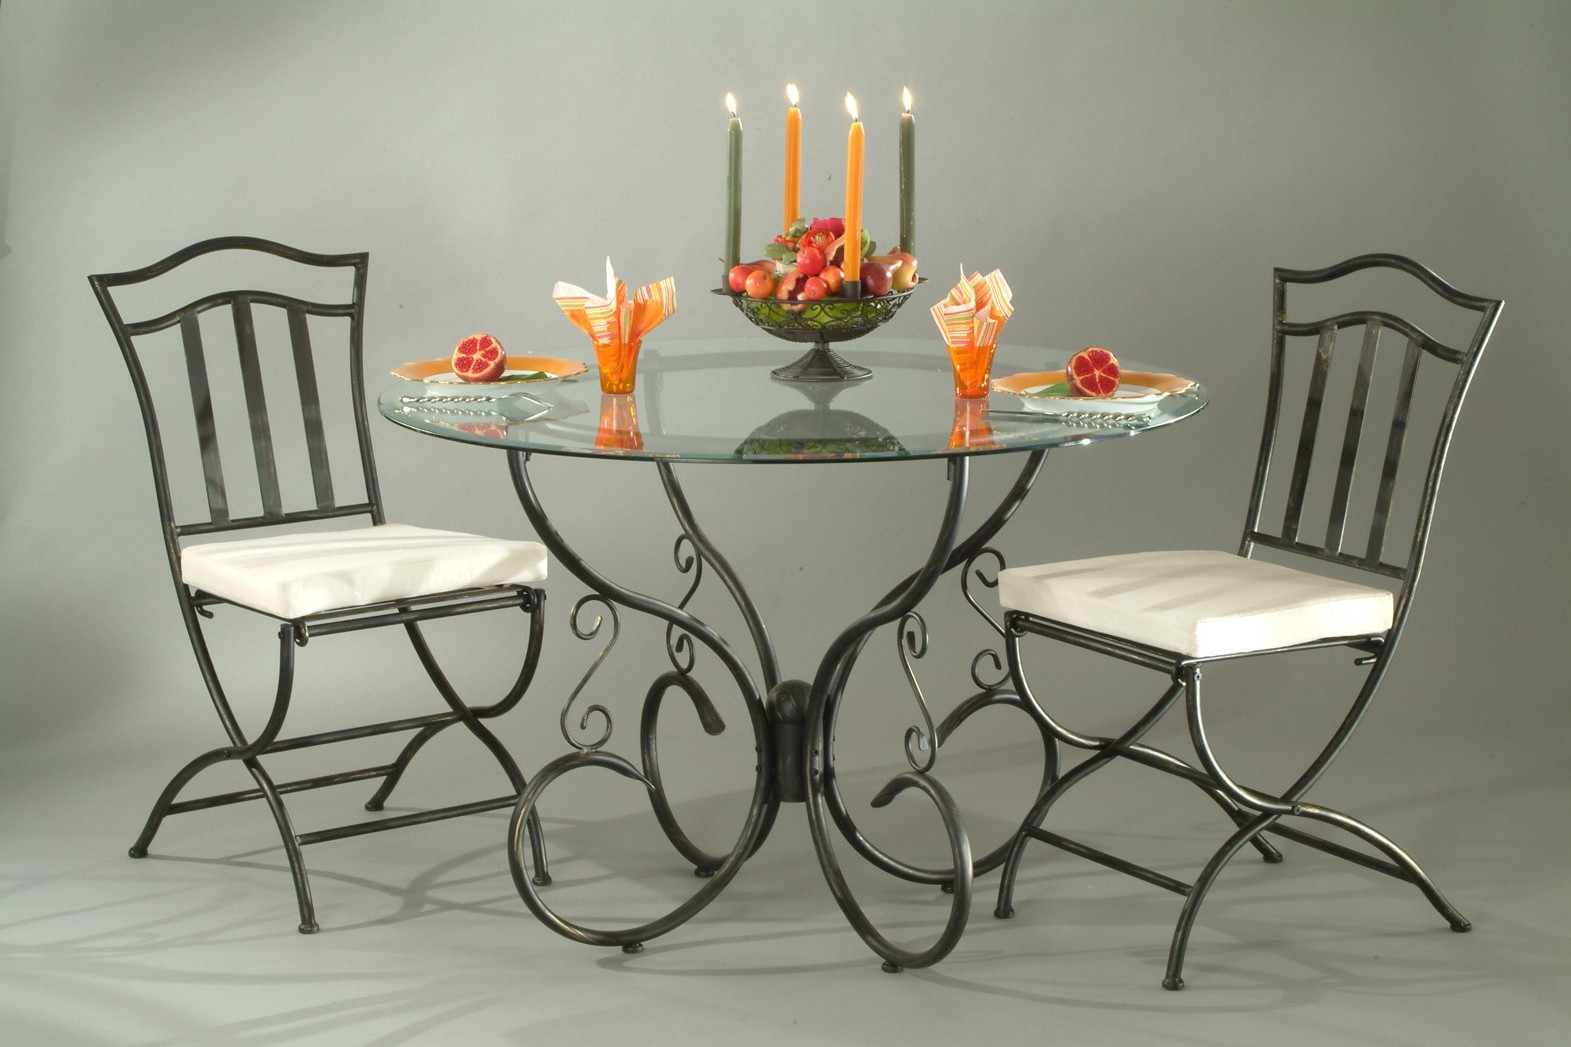 Chaise de table a manger id e inspirante for Table a manger et chaises